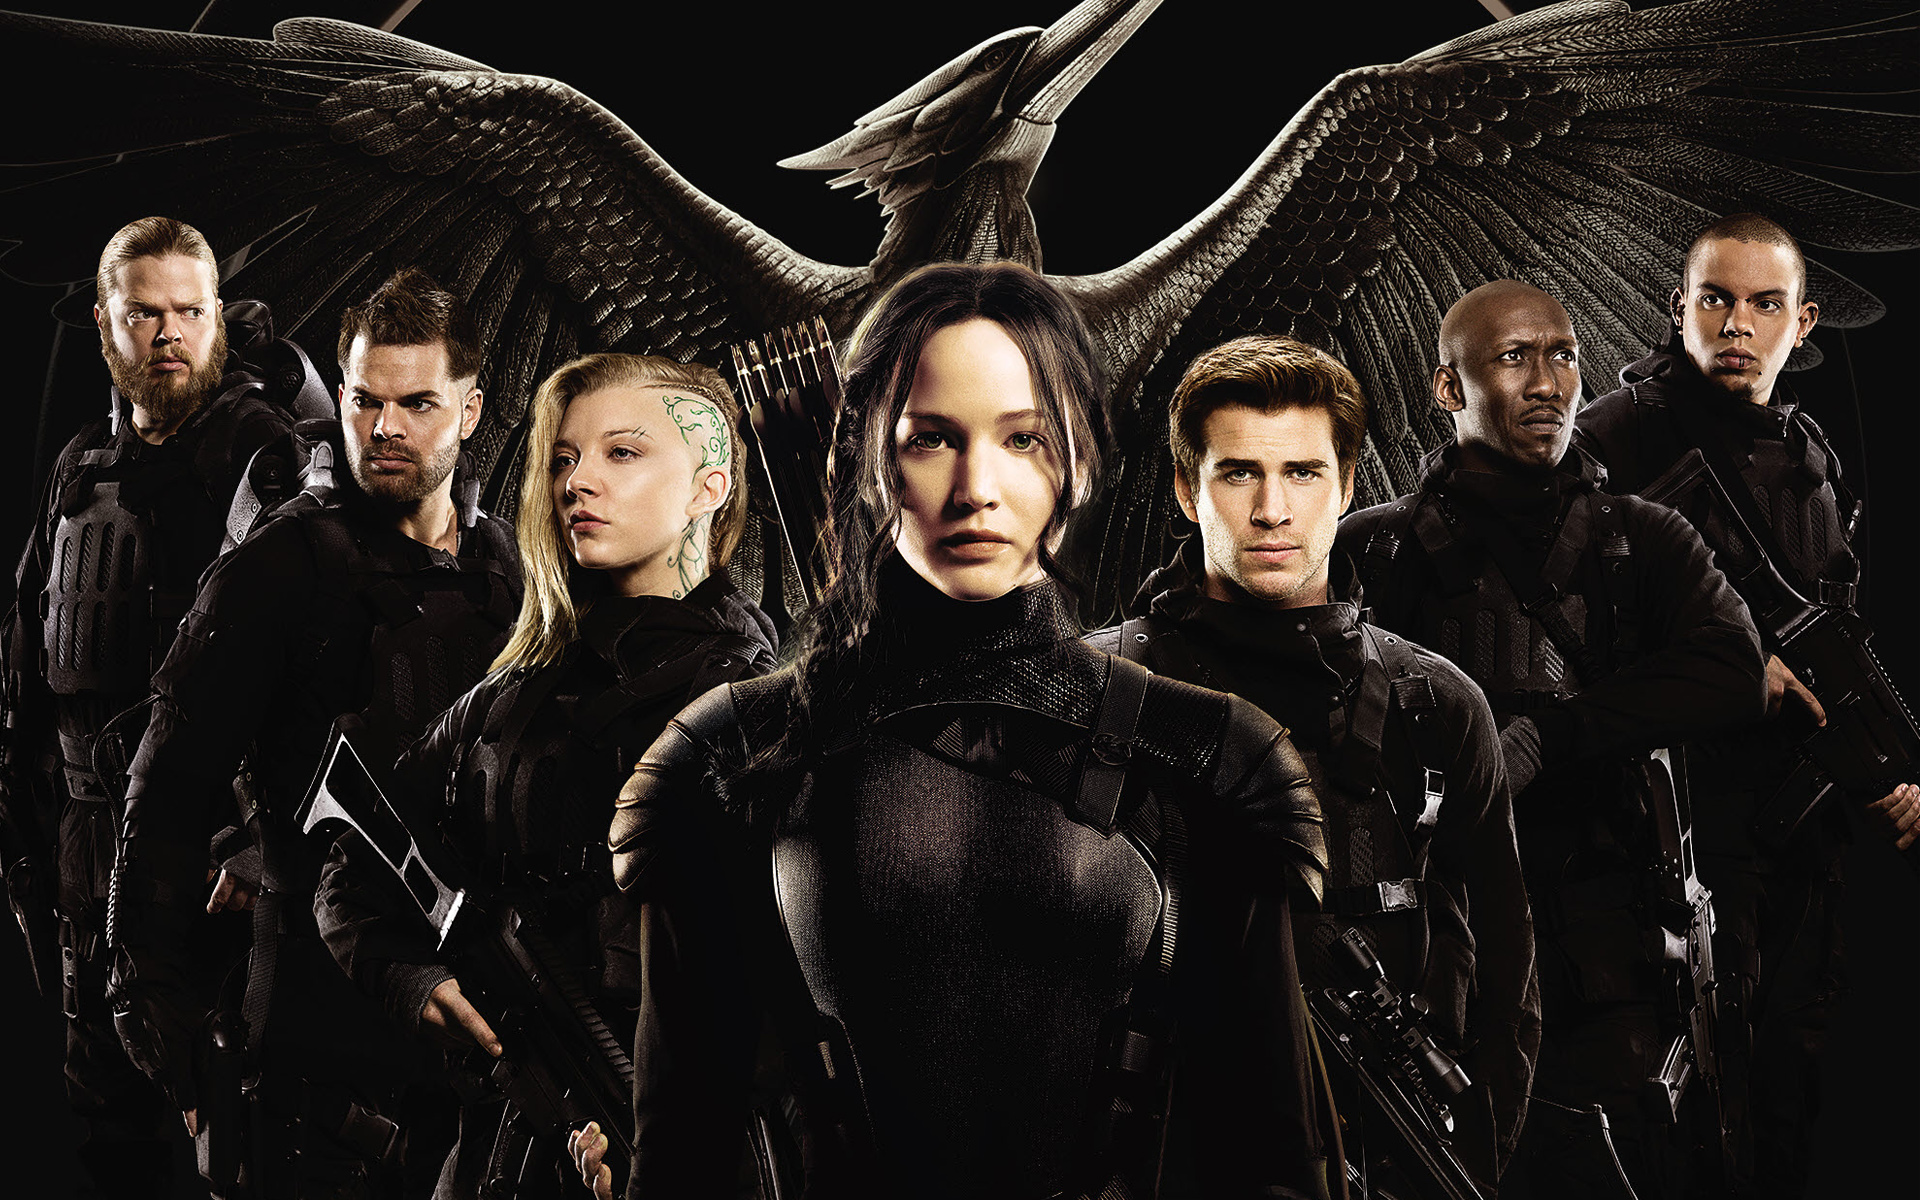 HD Wallpapers The Hunger Games Mockingjay Part 1 Movie